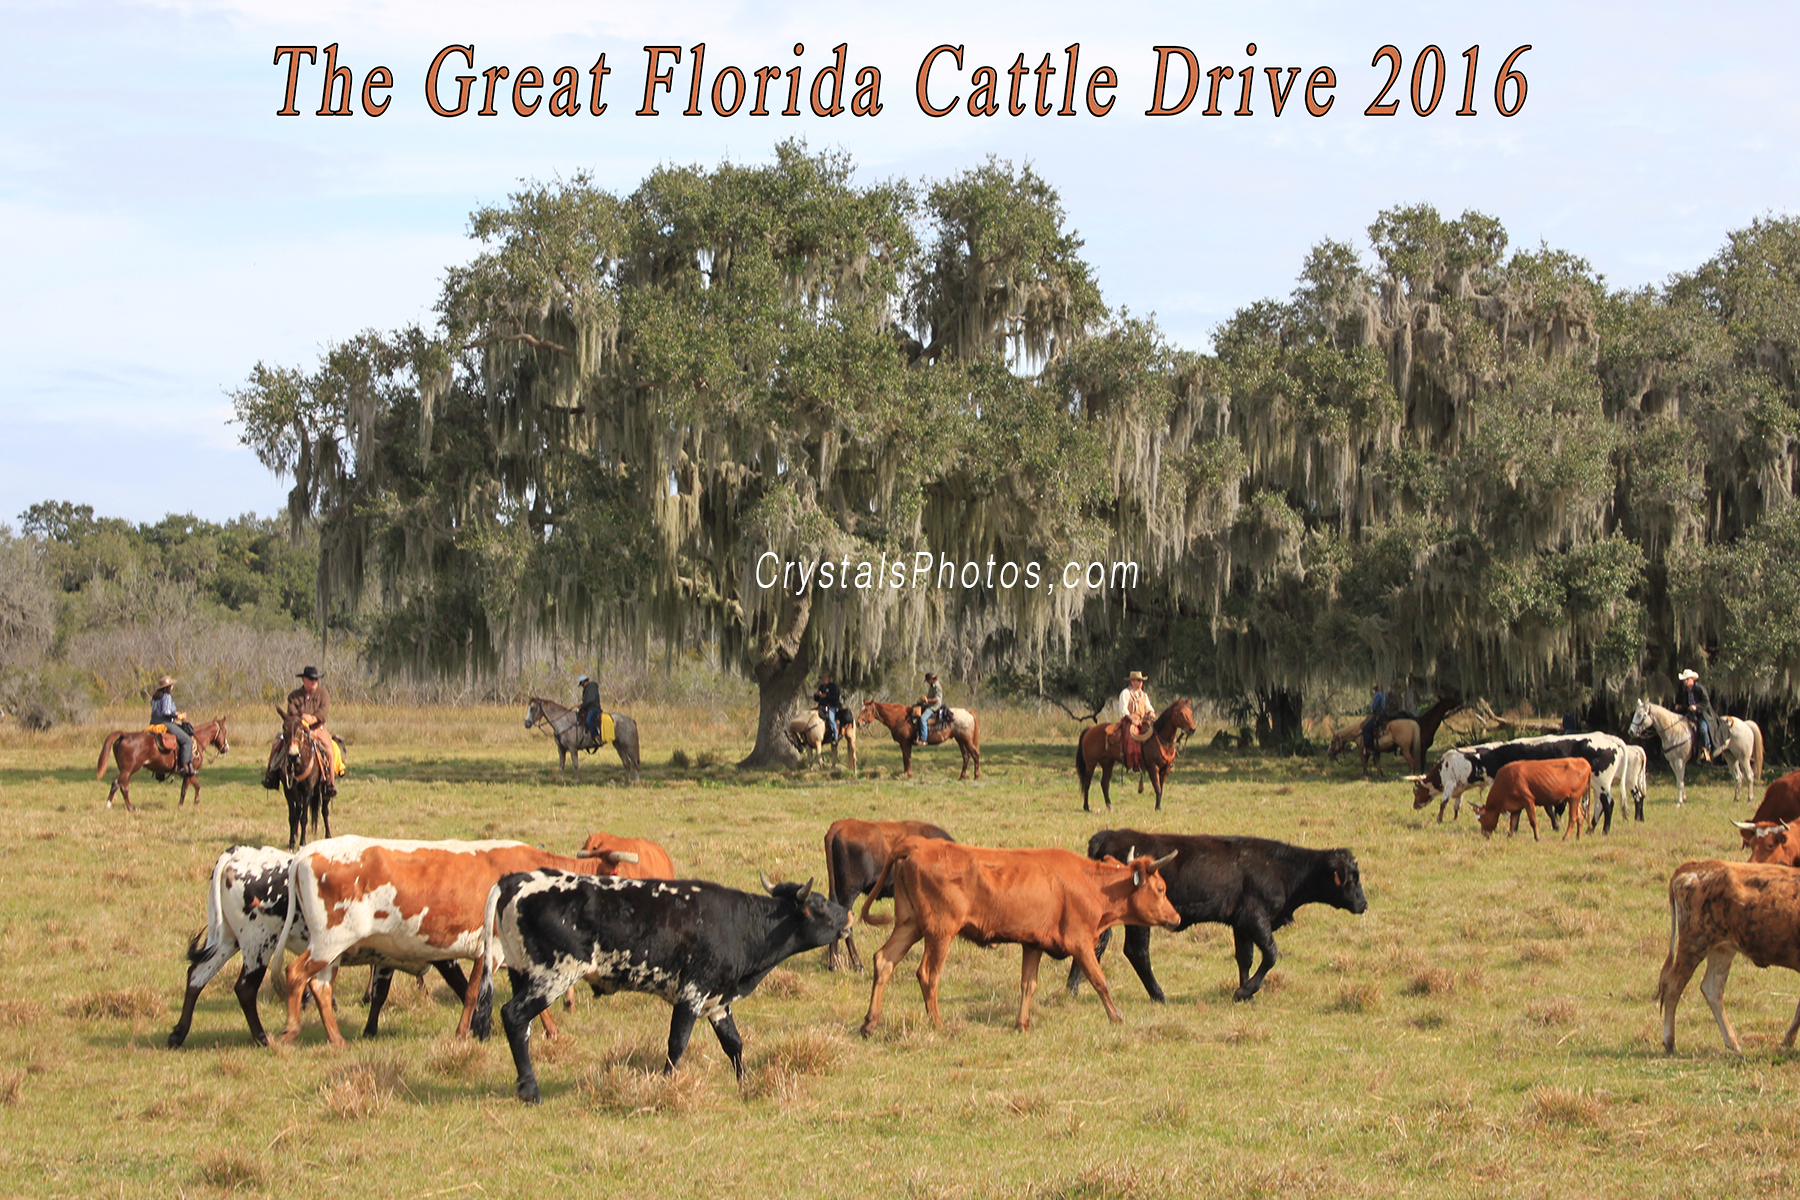 The Great Florida Cattle Drive 2016